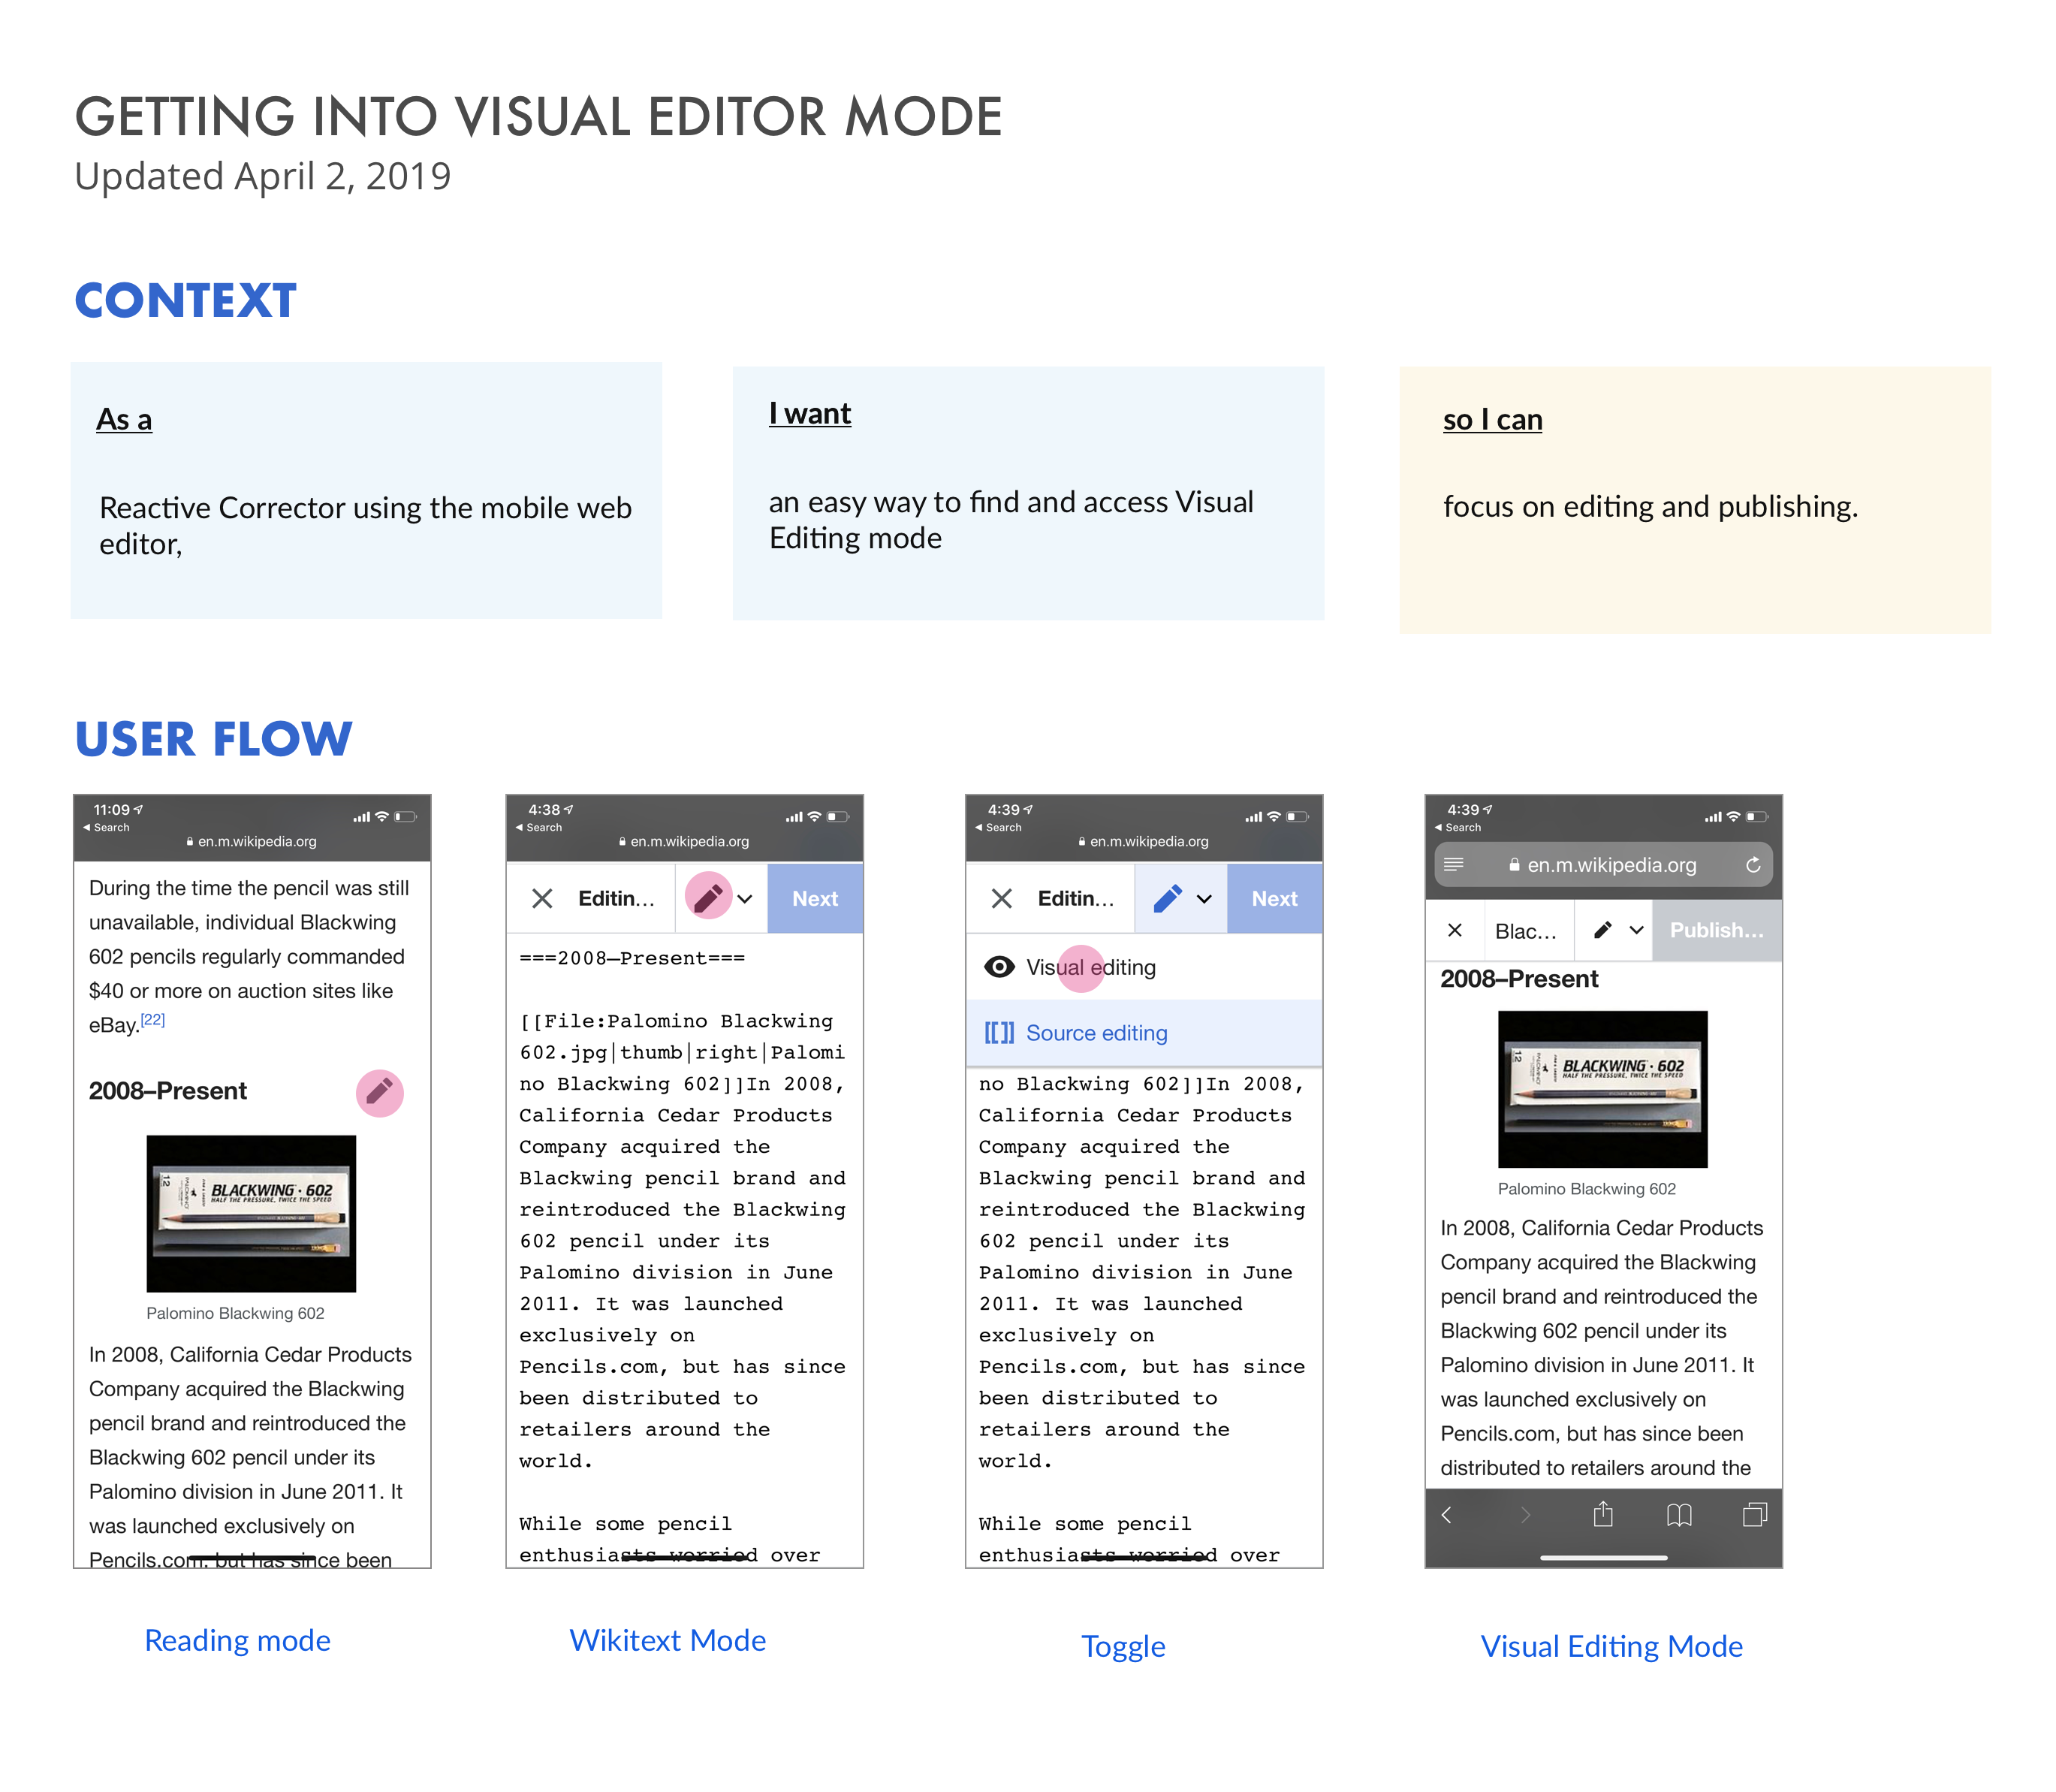 VE Mode@2x.png (2×2 px, 1 MB)